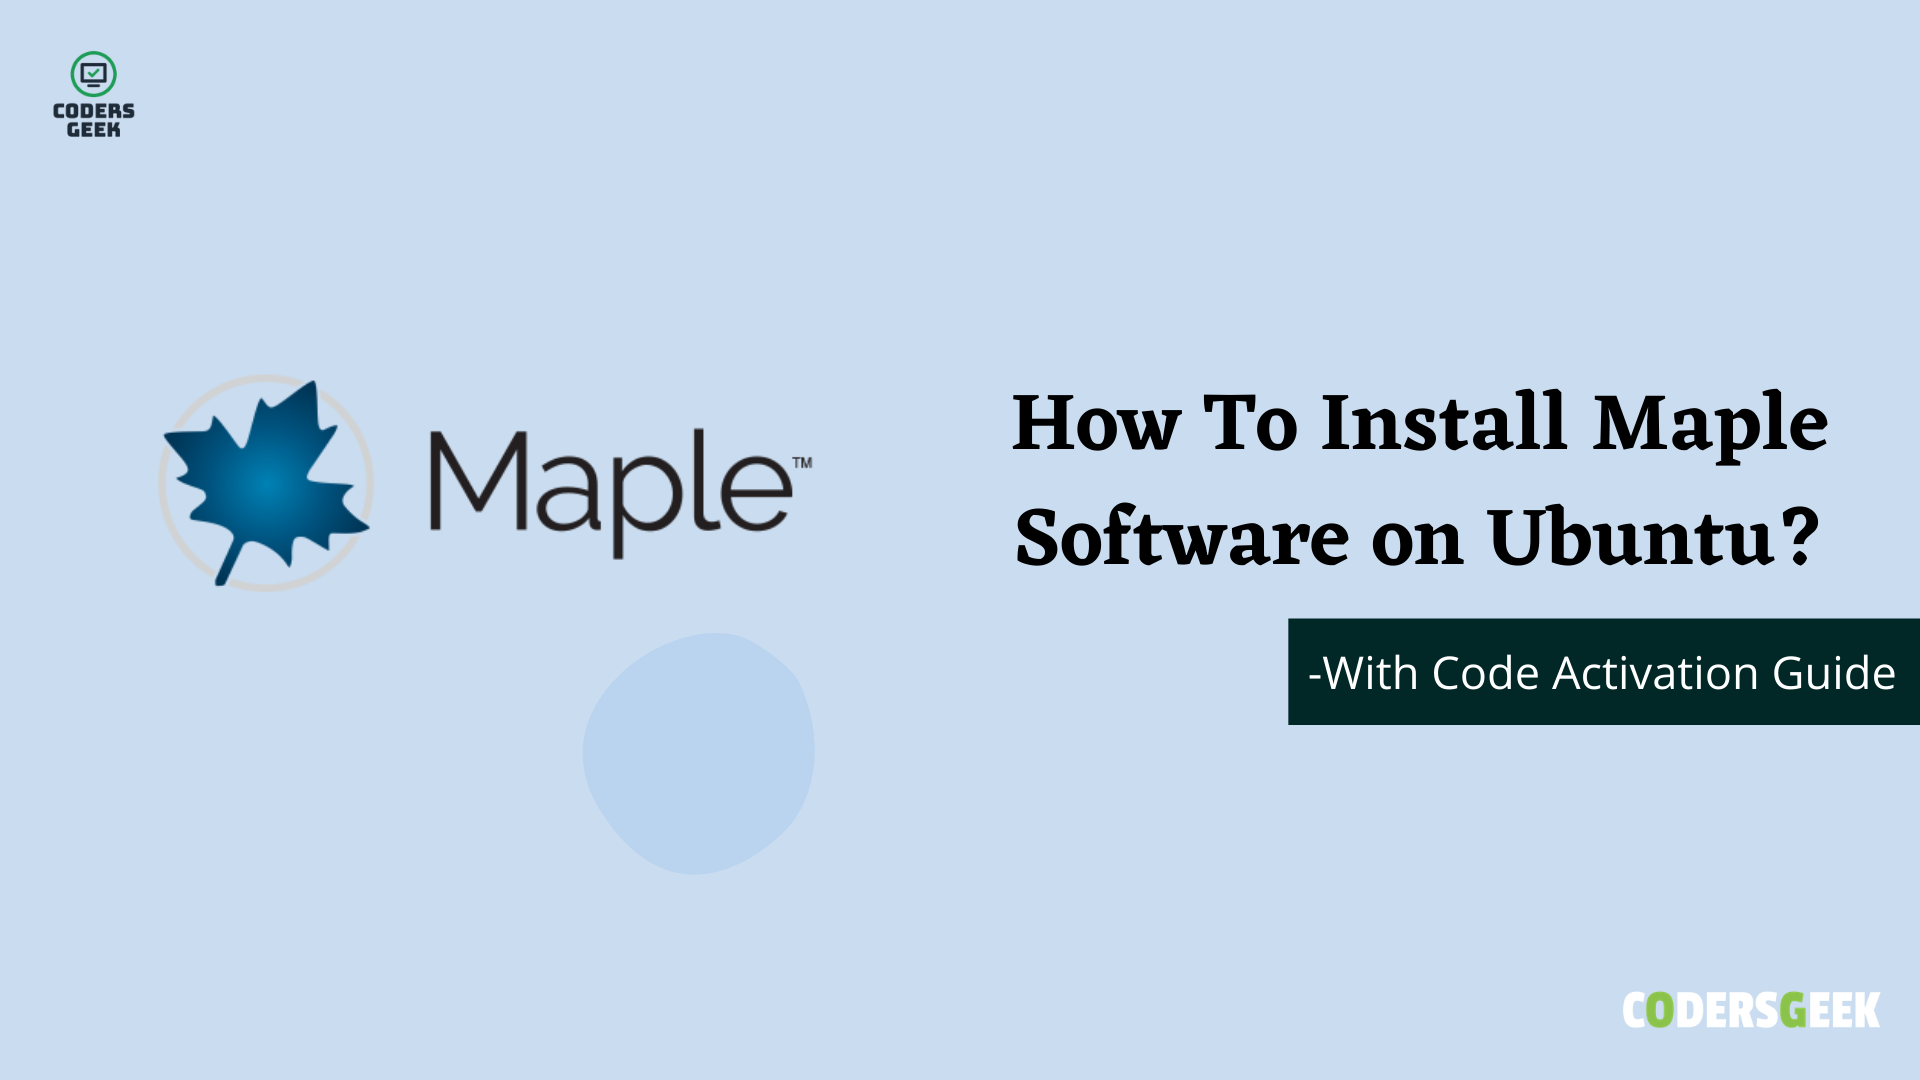 How To Install Maple Software in Ubuntu?